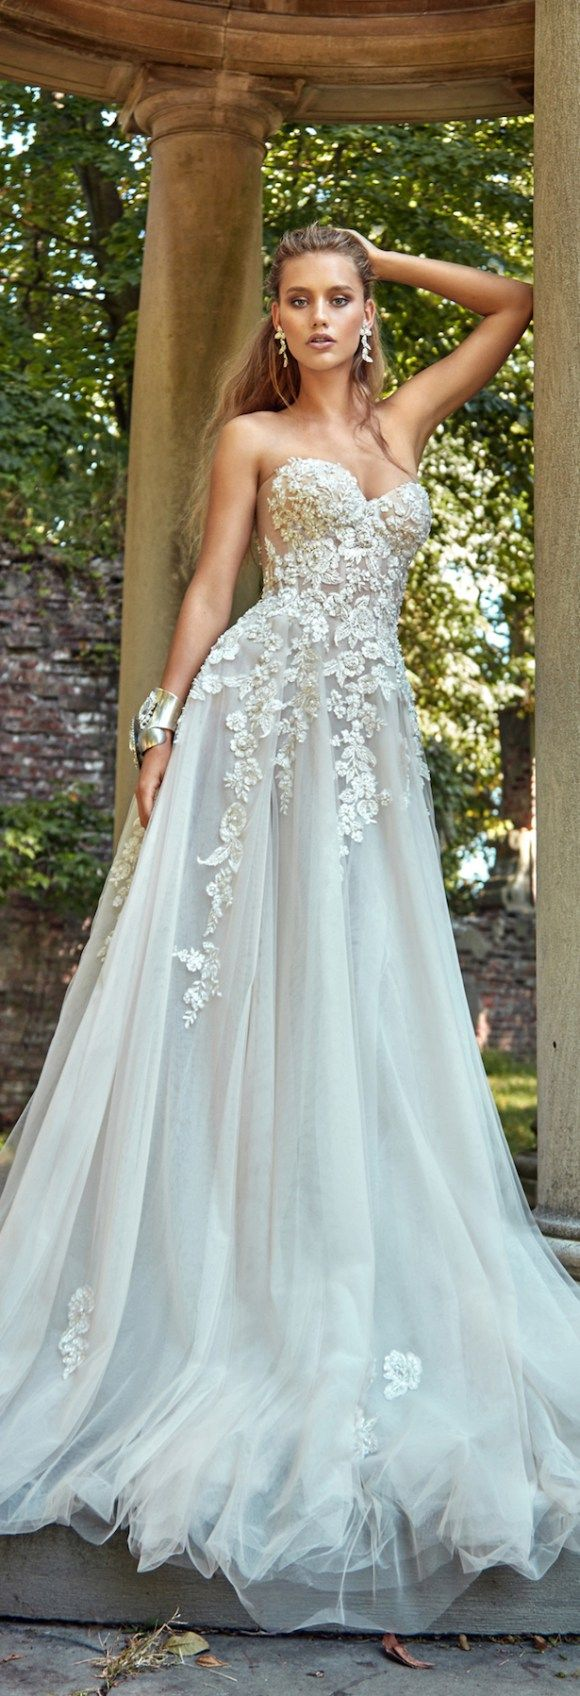 1193 best Wedding Fashion images on Pinterest | Bridal gowns ...